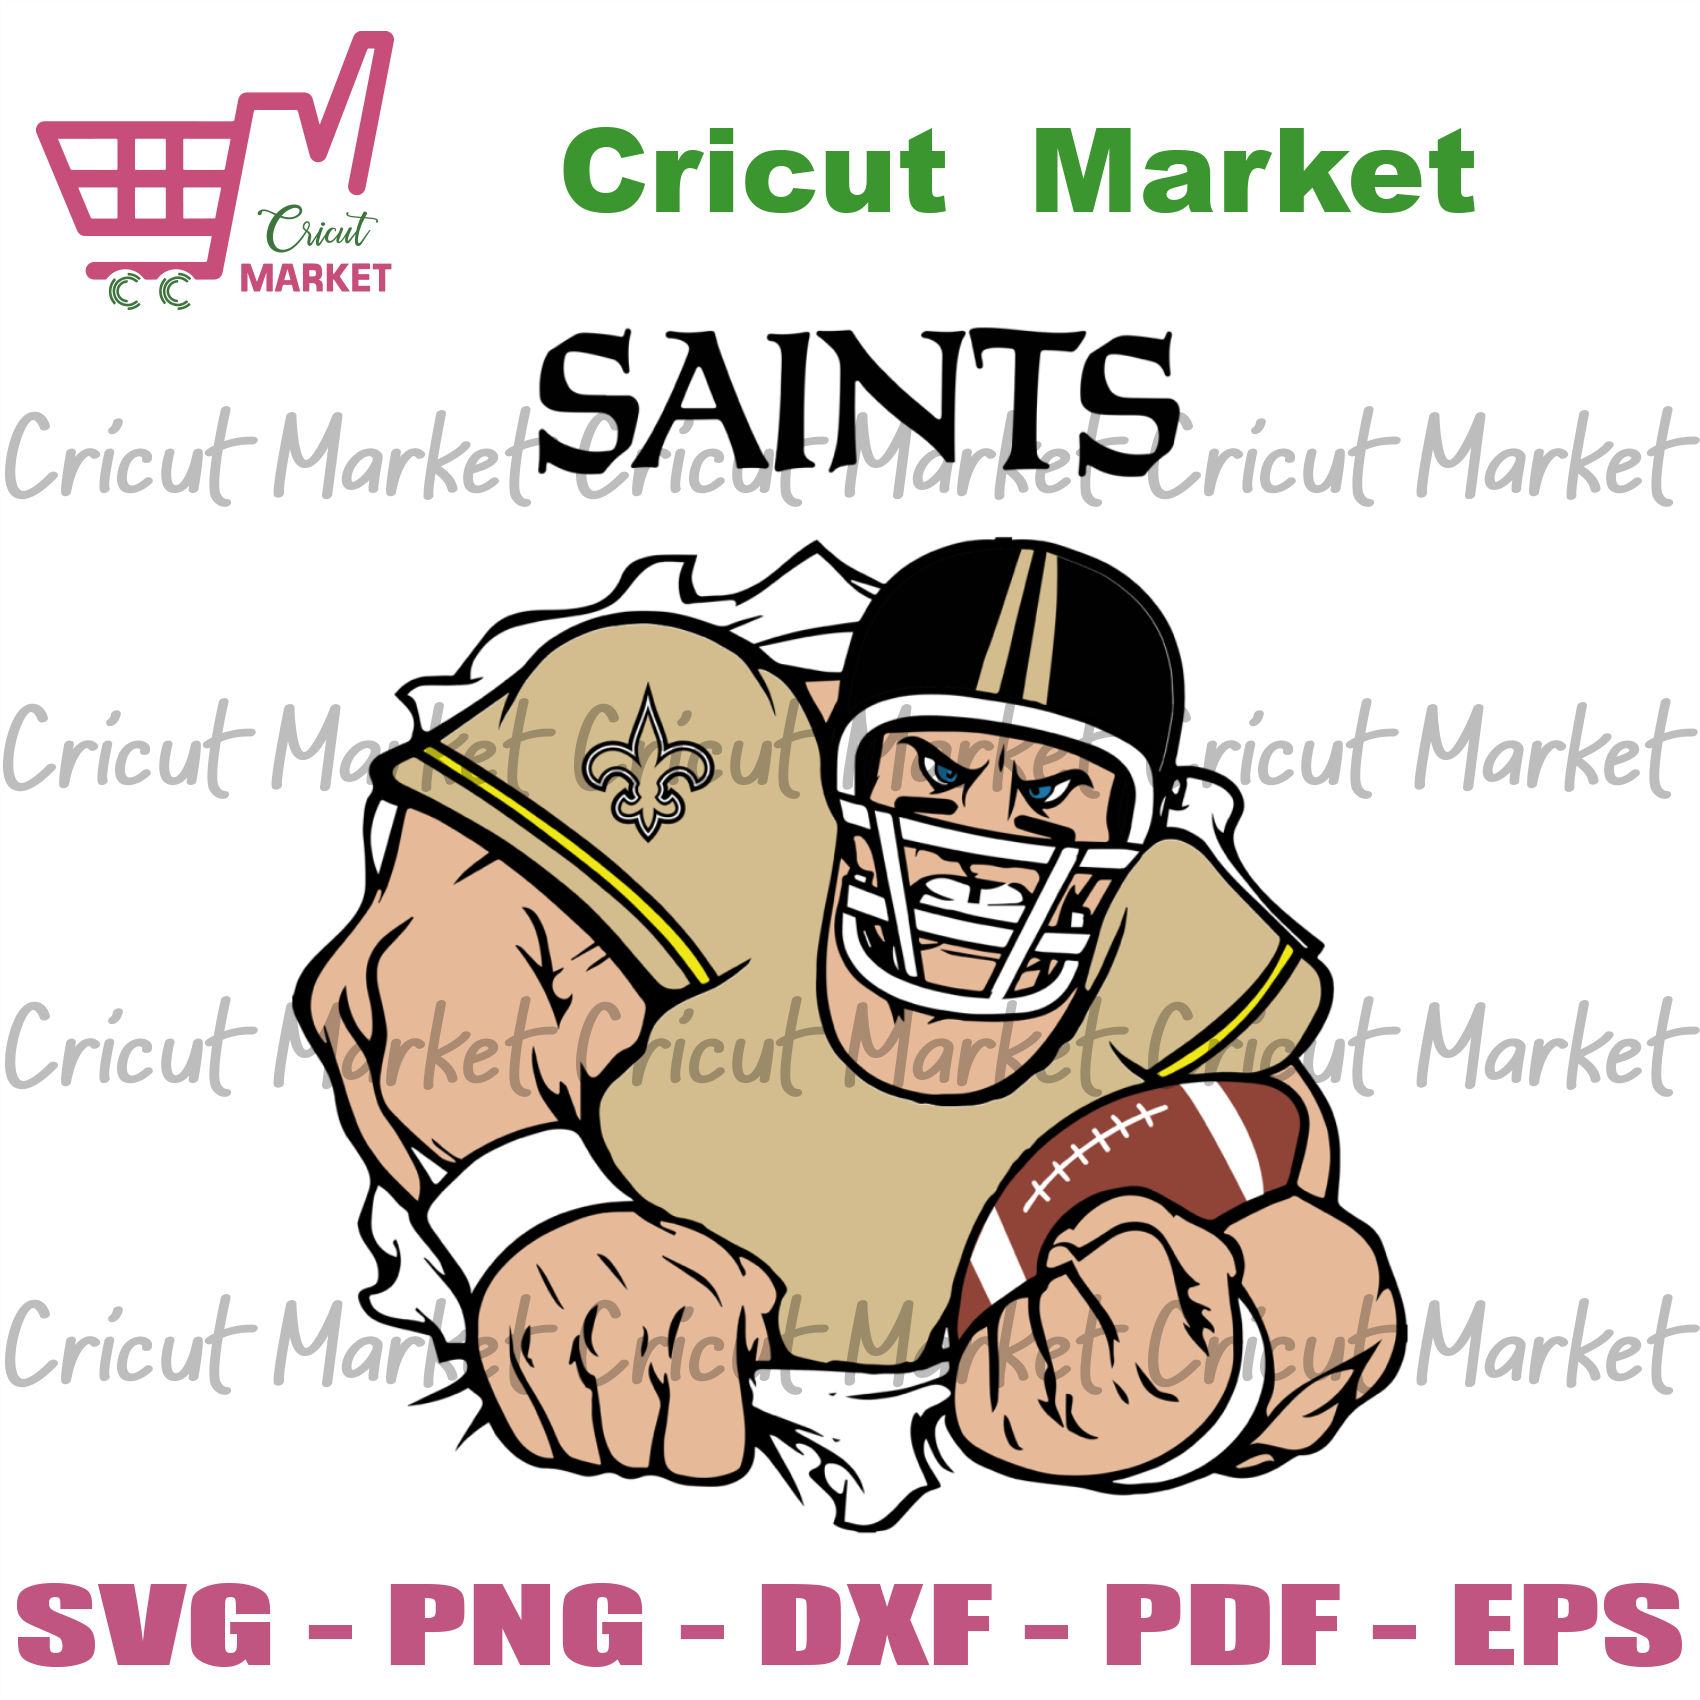 New Orleans Saints Player, Nfl Svg, New Orleans Saints Svg, New Orleans Saints Football, Saints Shirt, Football Logo, Sport Svg, Nfl Fabric, Nfl Football, Football Gift, Nfl Championship, Foo